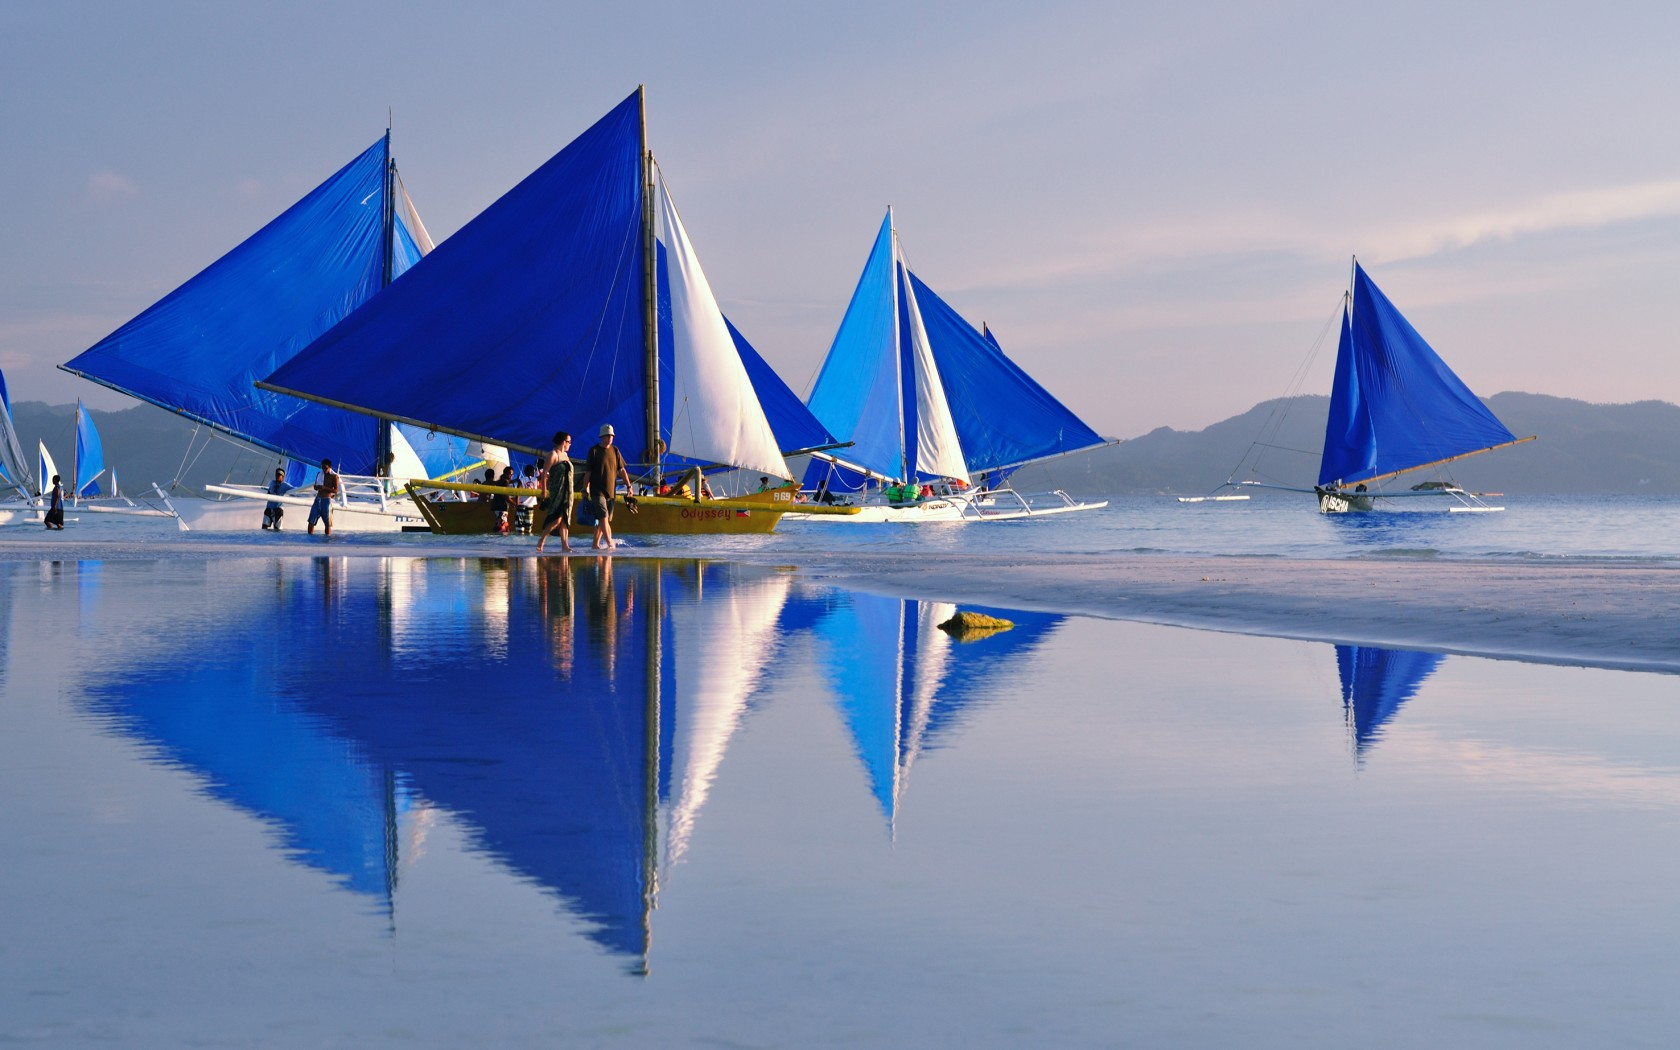 Boracay beach boats in philippines